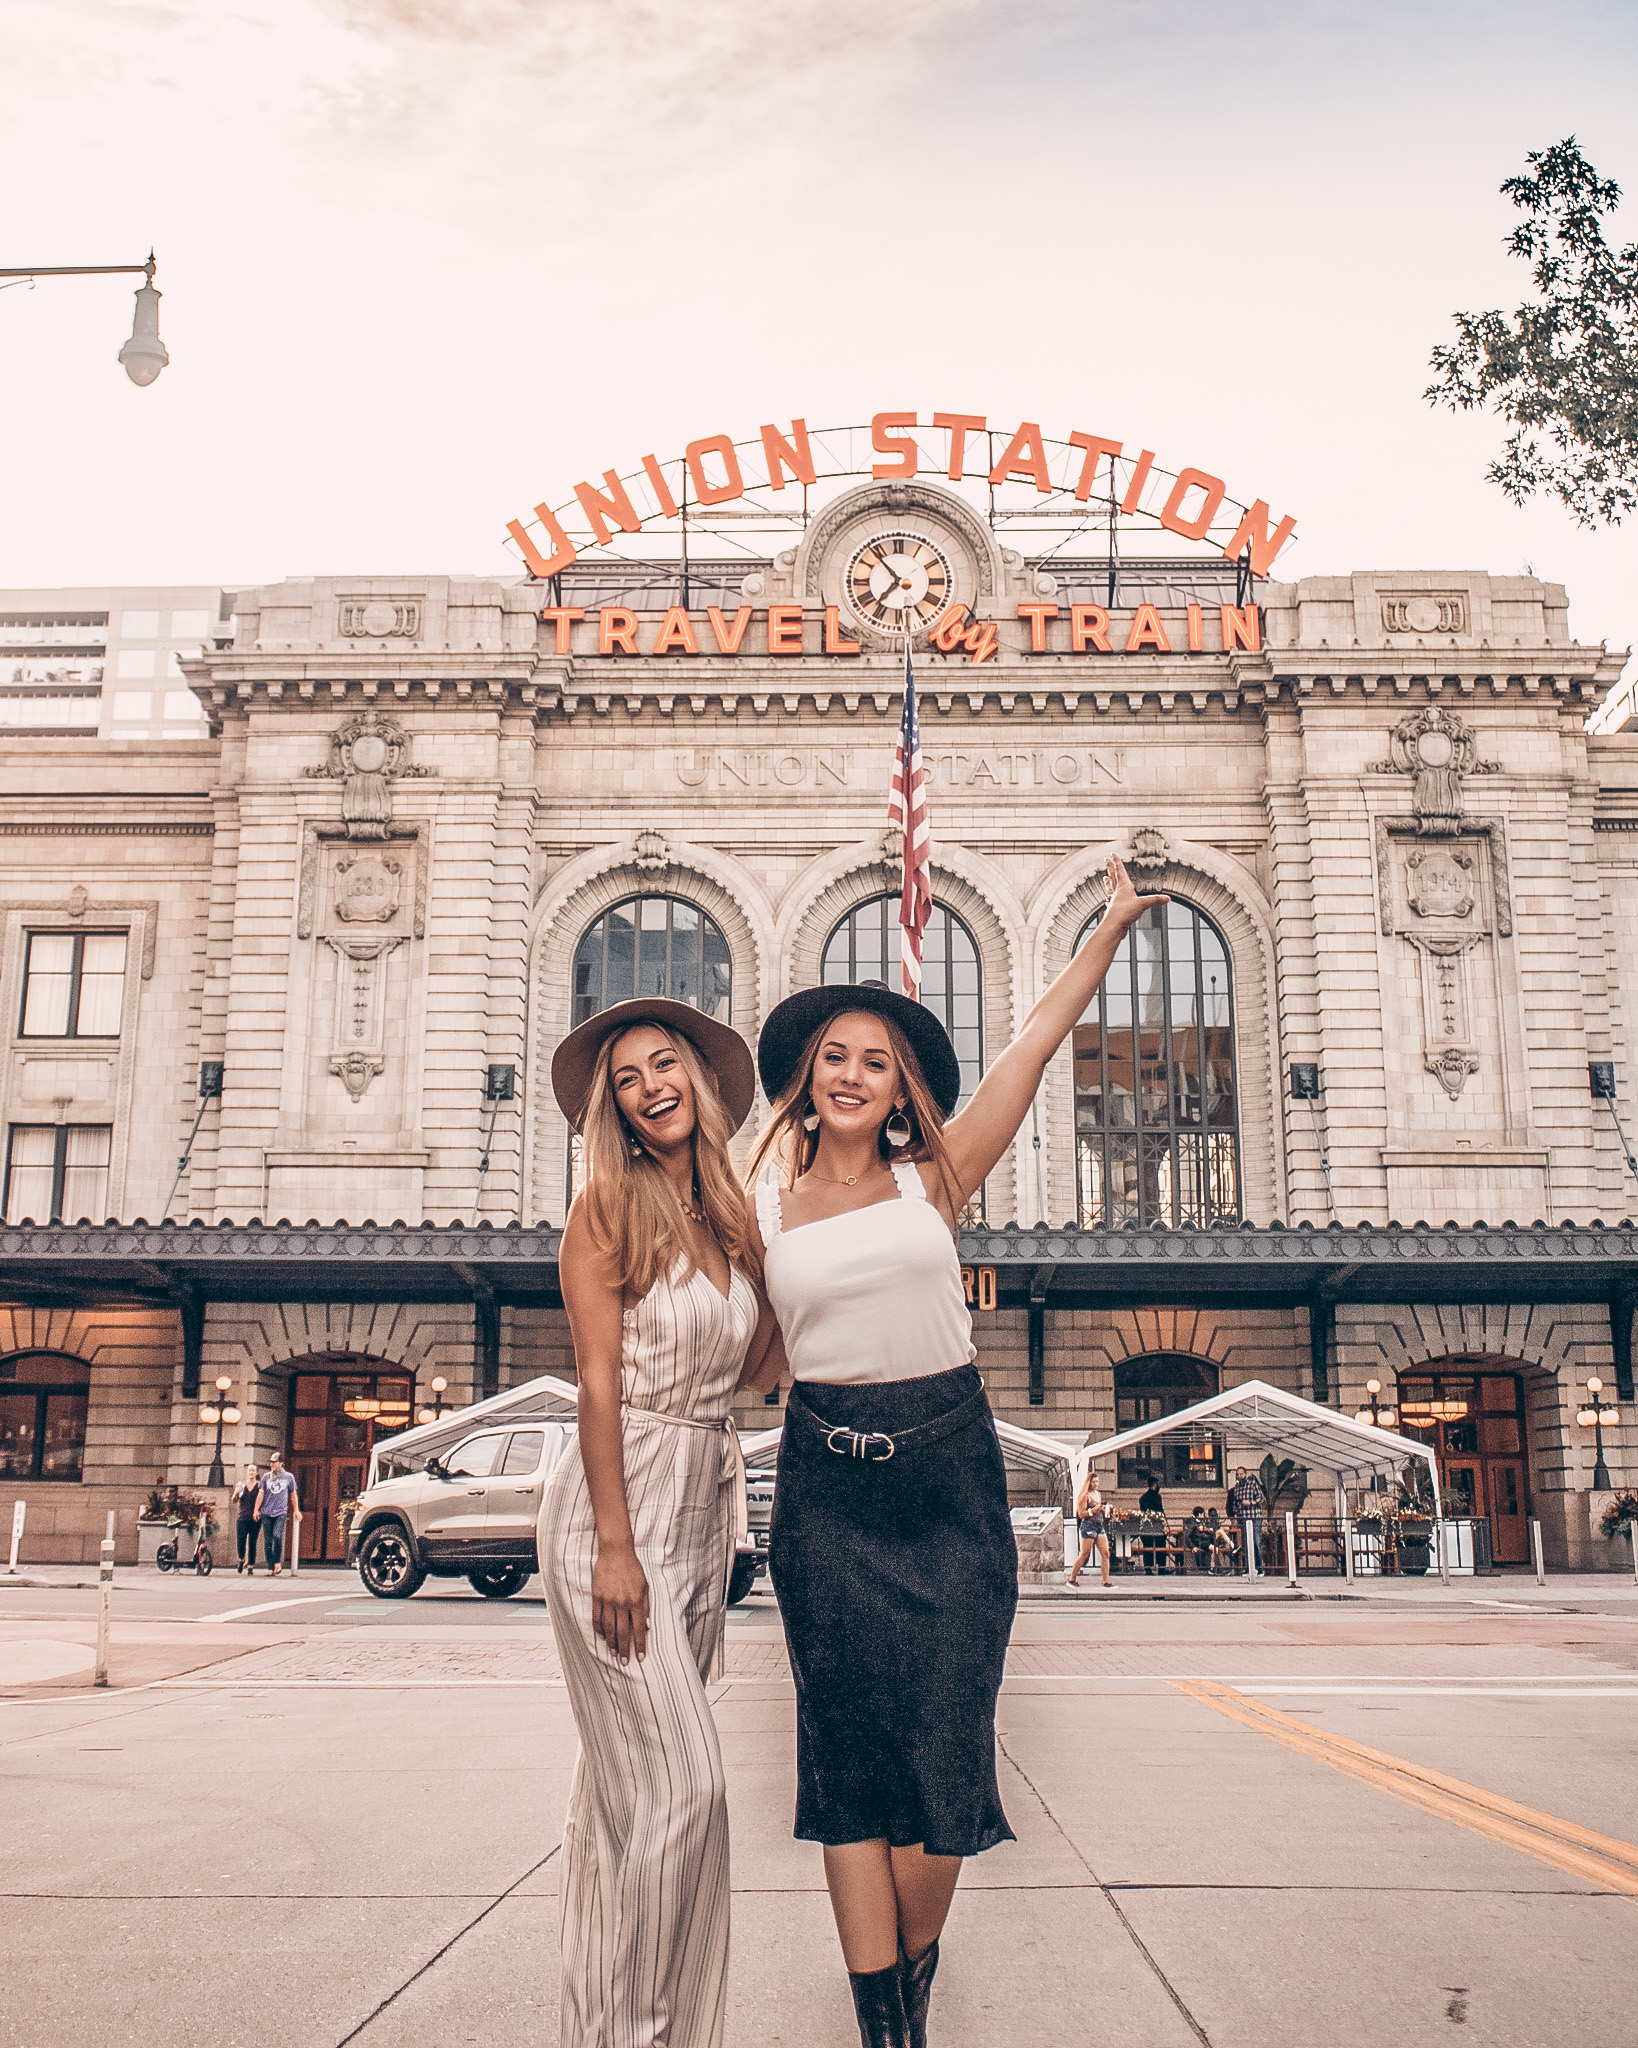 Co-Founders of Runaway Bridal in front of Union Station in Denver, Colorado